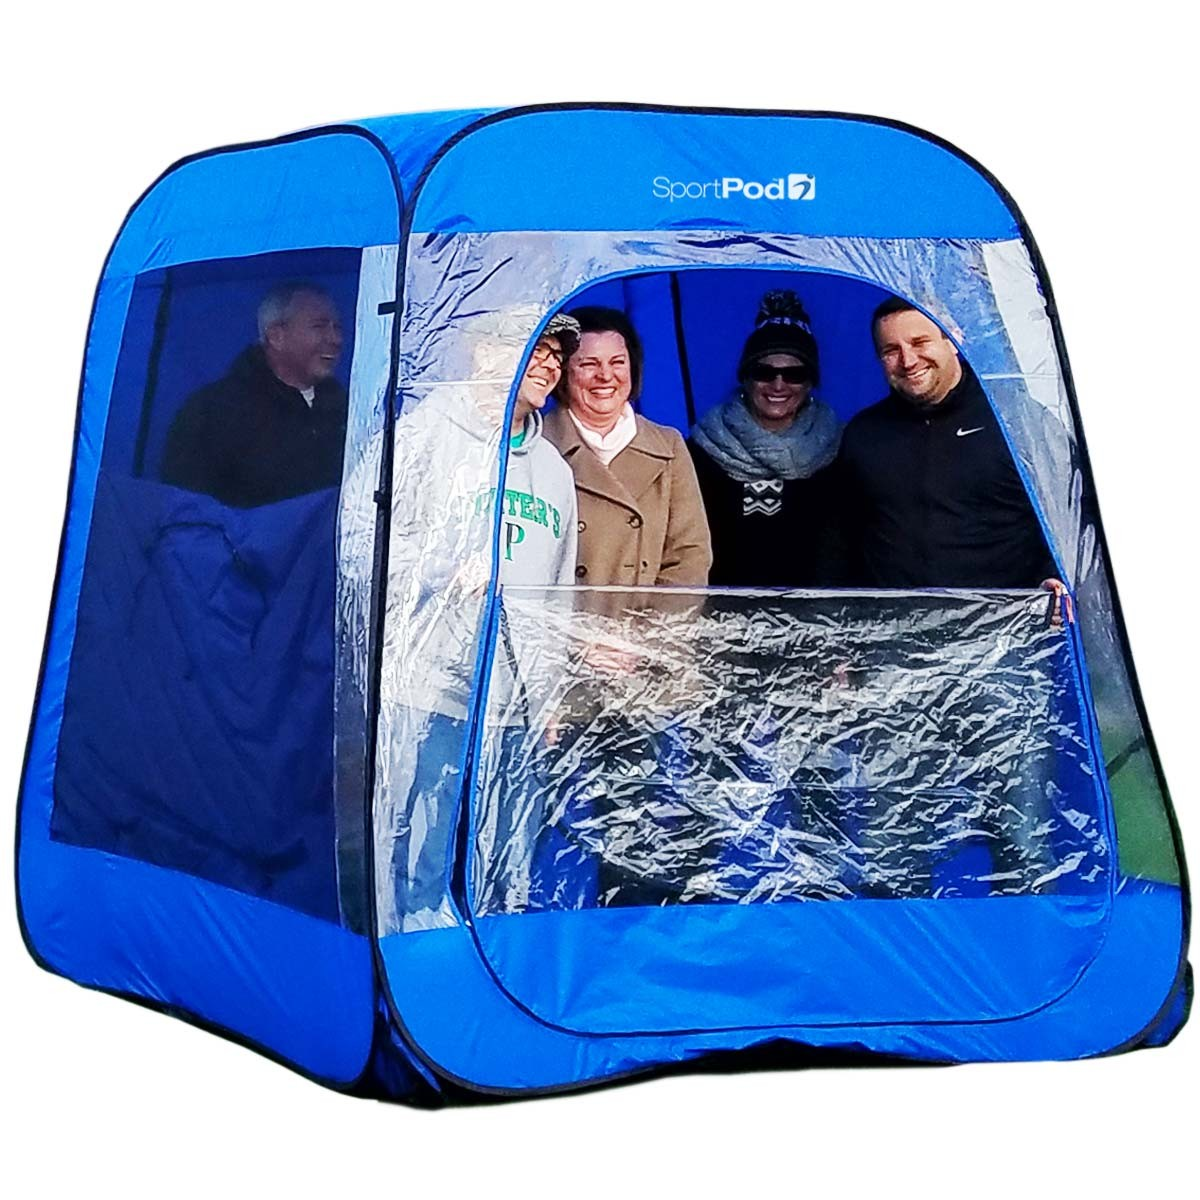 Teampod™ undercover™ all weather sportpod™ pop up chair tent.